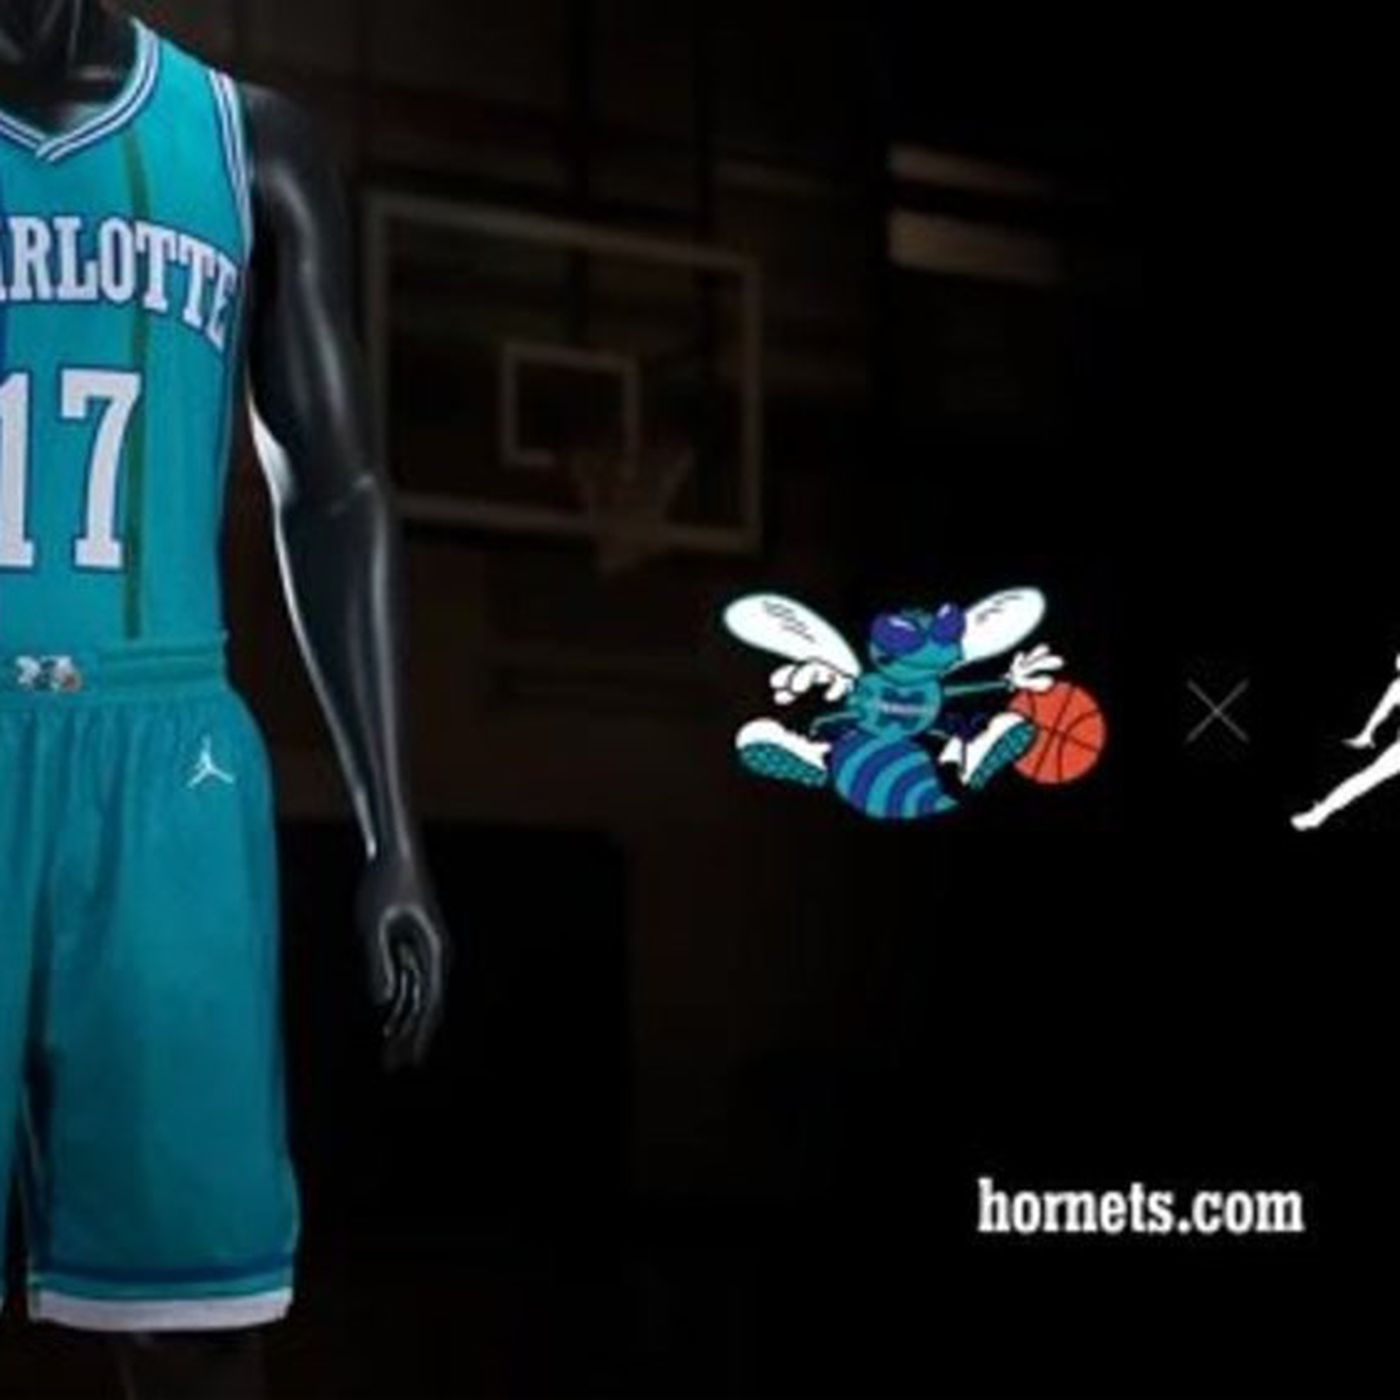 656e929e535 Charlotte Hornets unveil classic uniform - At The Hive